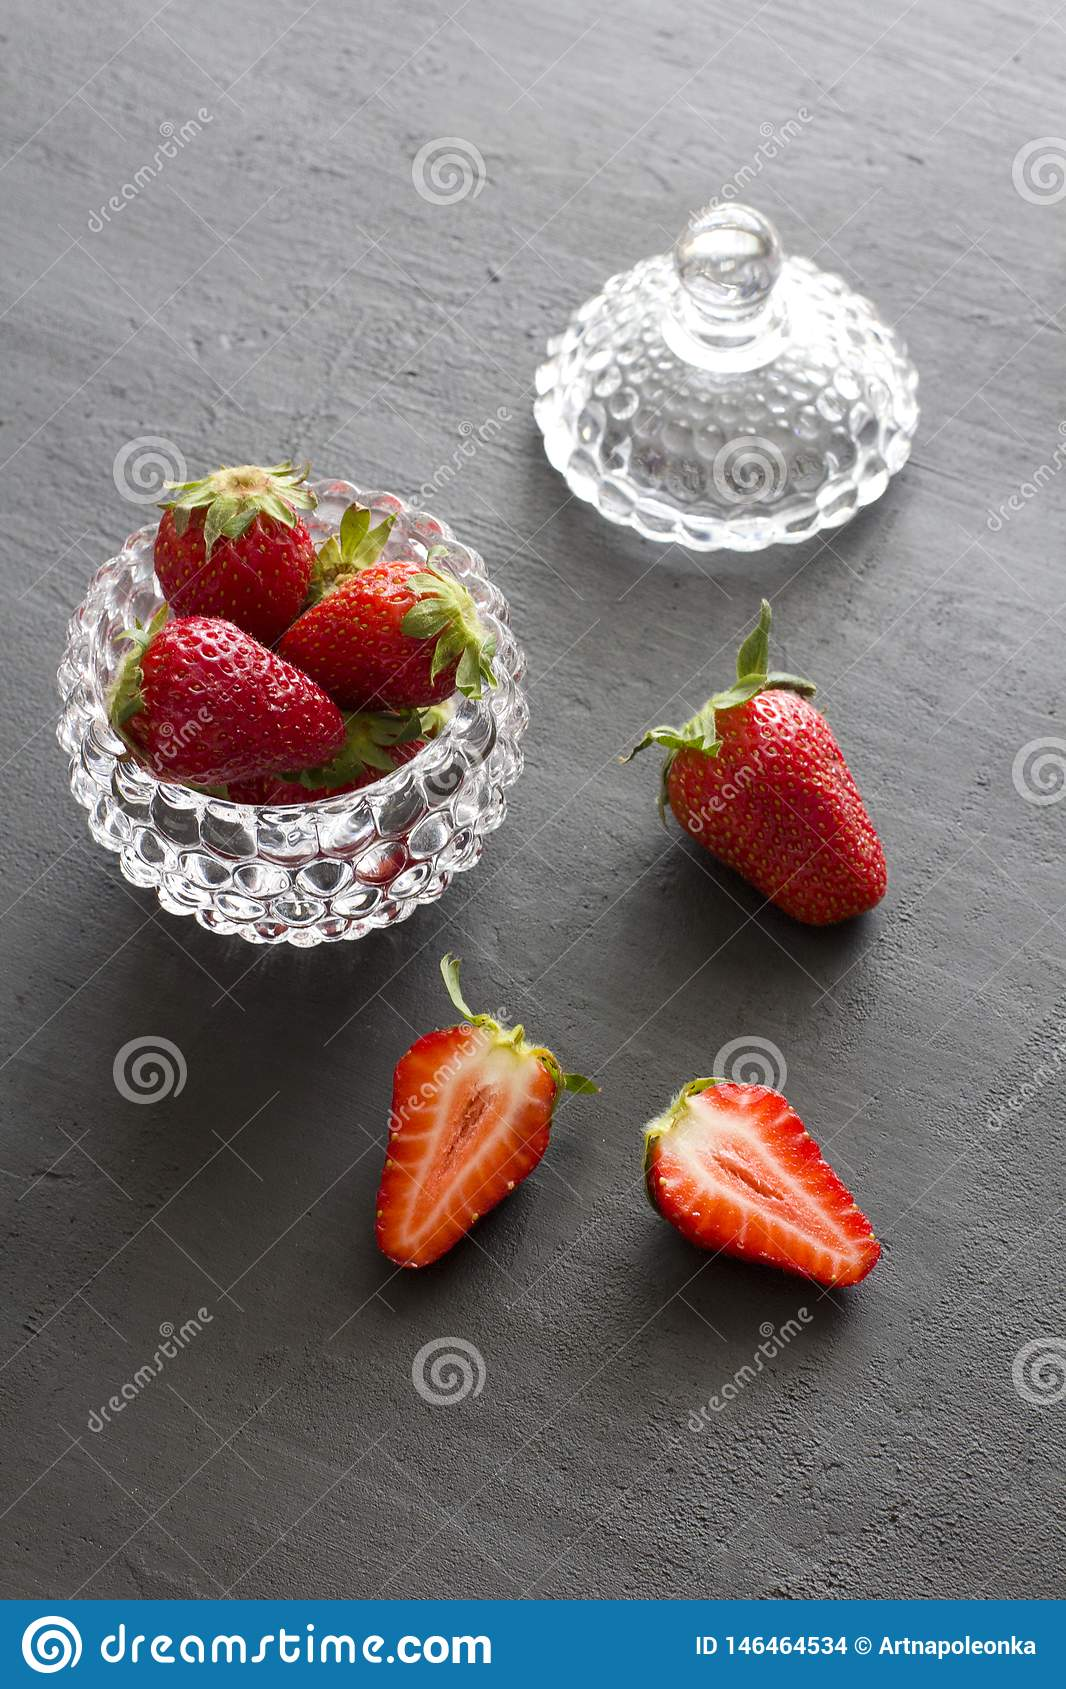 Beautiful red strawberry in glass round bowl. Strawberries on a black dark concrete background. Rustic style. Vertical. Minimalism